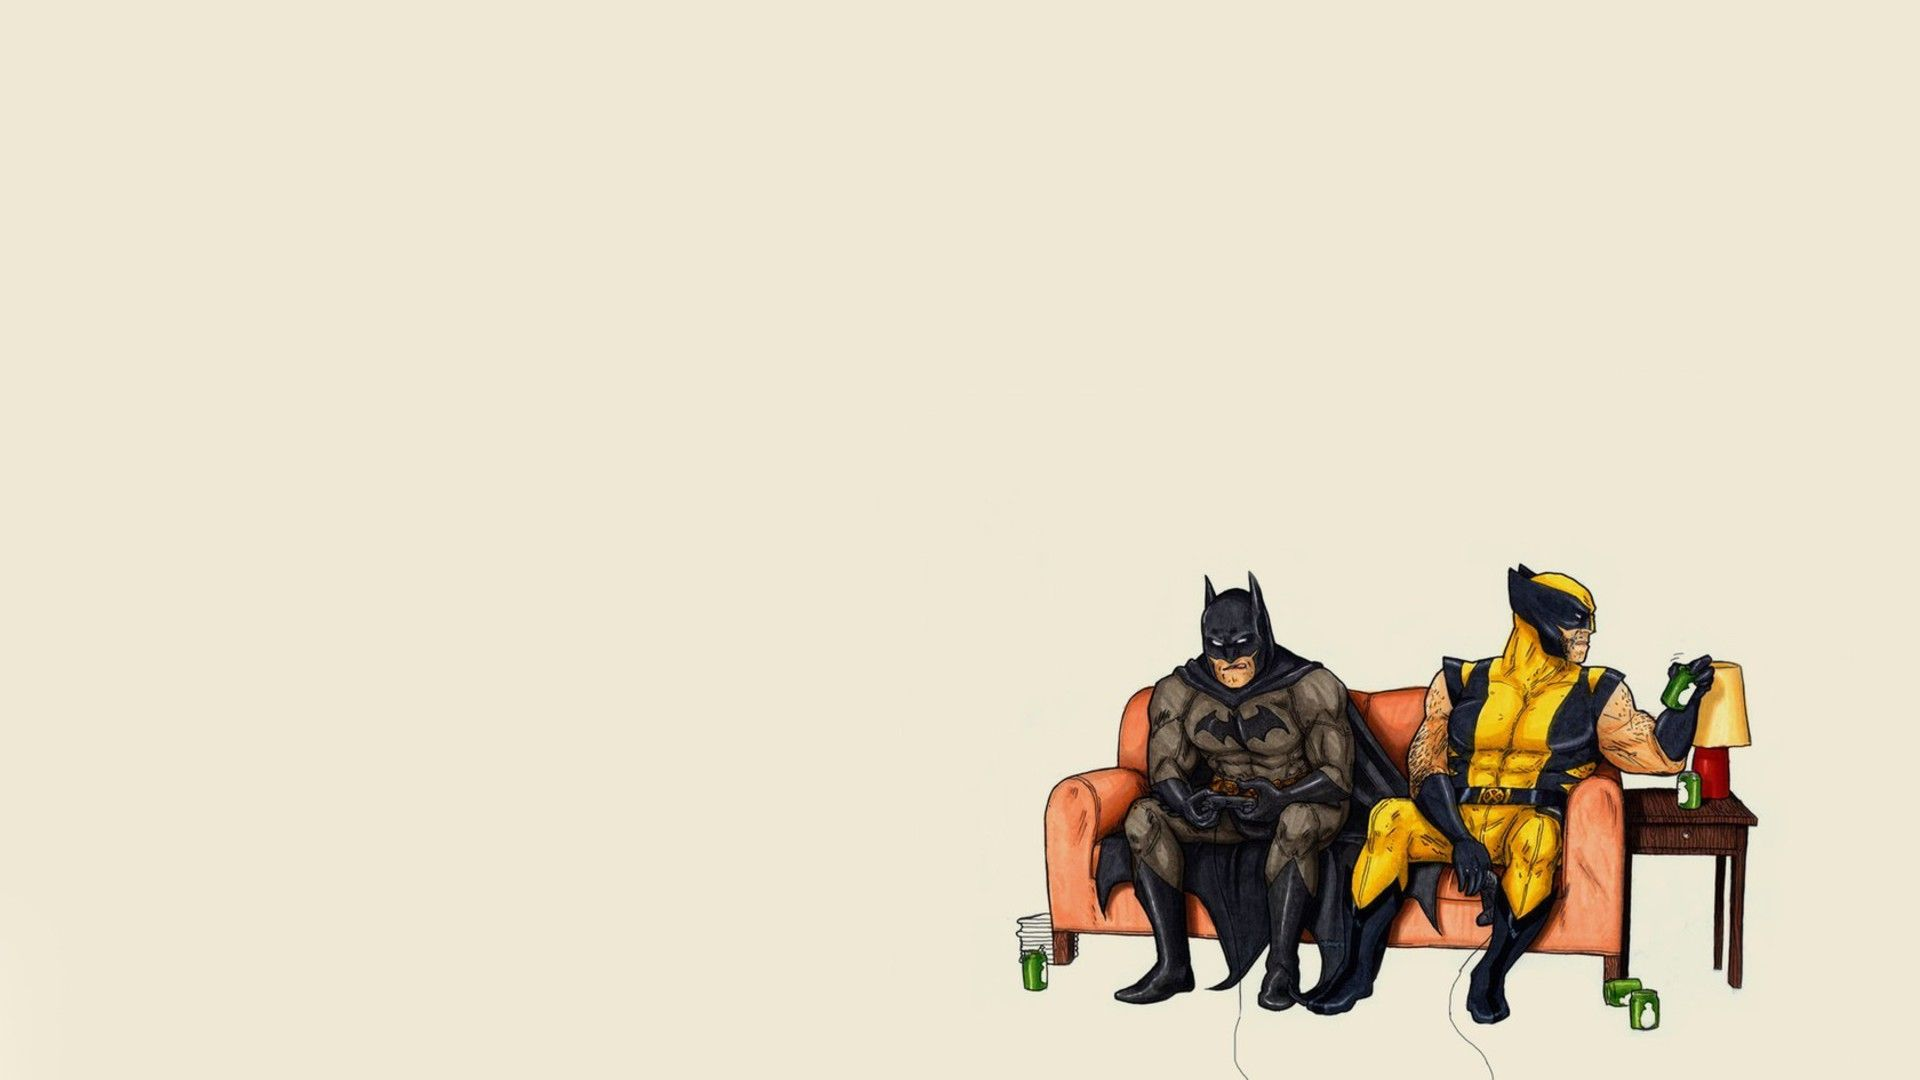 Amazing Wallpaper High Quality Marvel - 40a574f62221f66c3ff343f1269fc0ce  Collection_77298.jpg